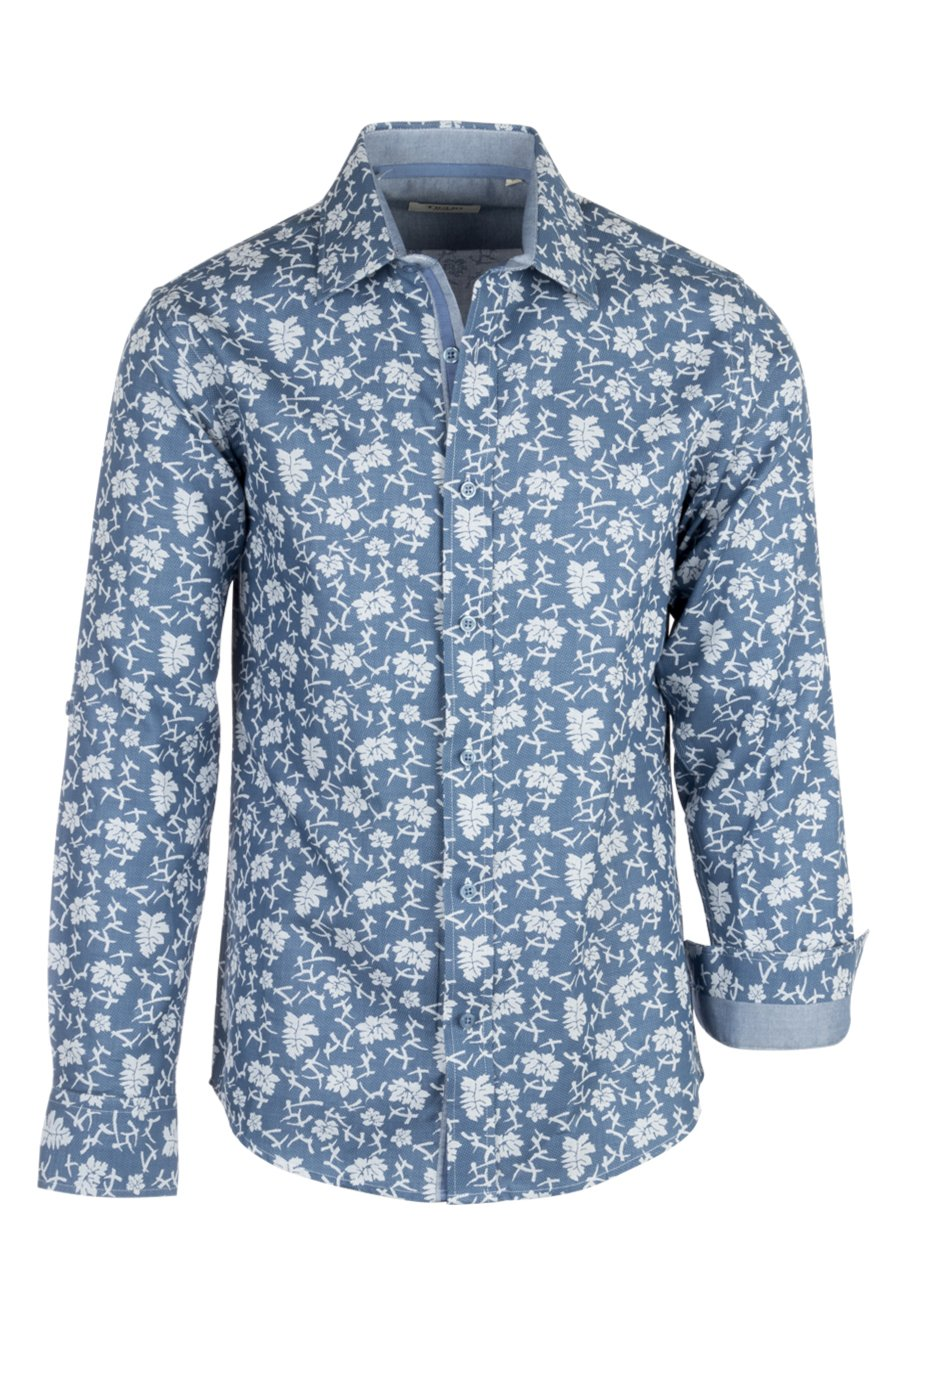 Tiglio Sport Blue Jean with White Flower Pattern Modern Fit Sport Shirt V-90801